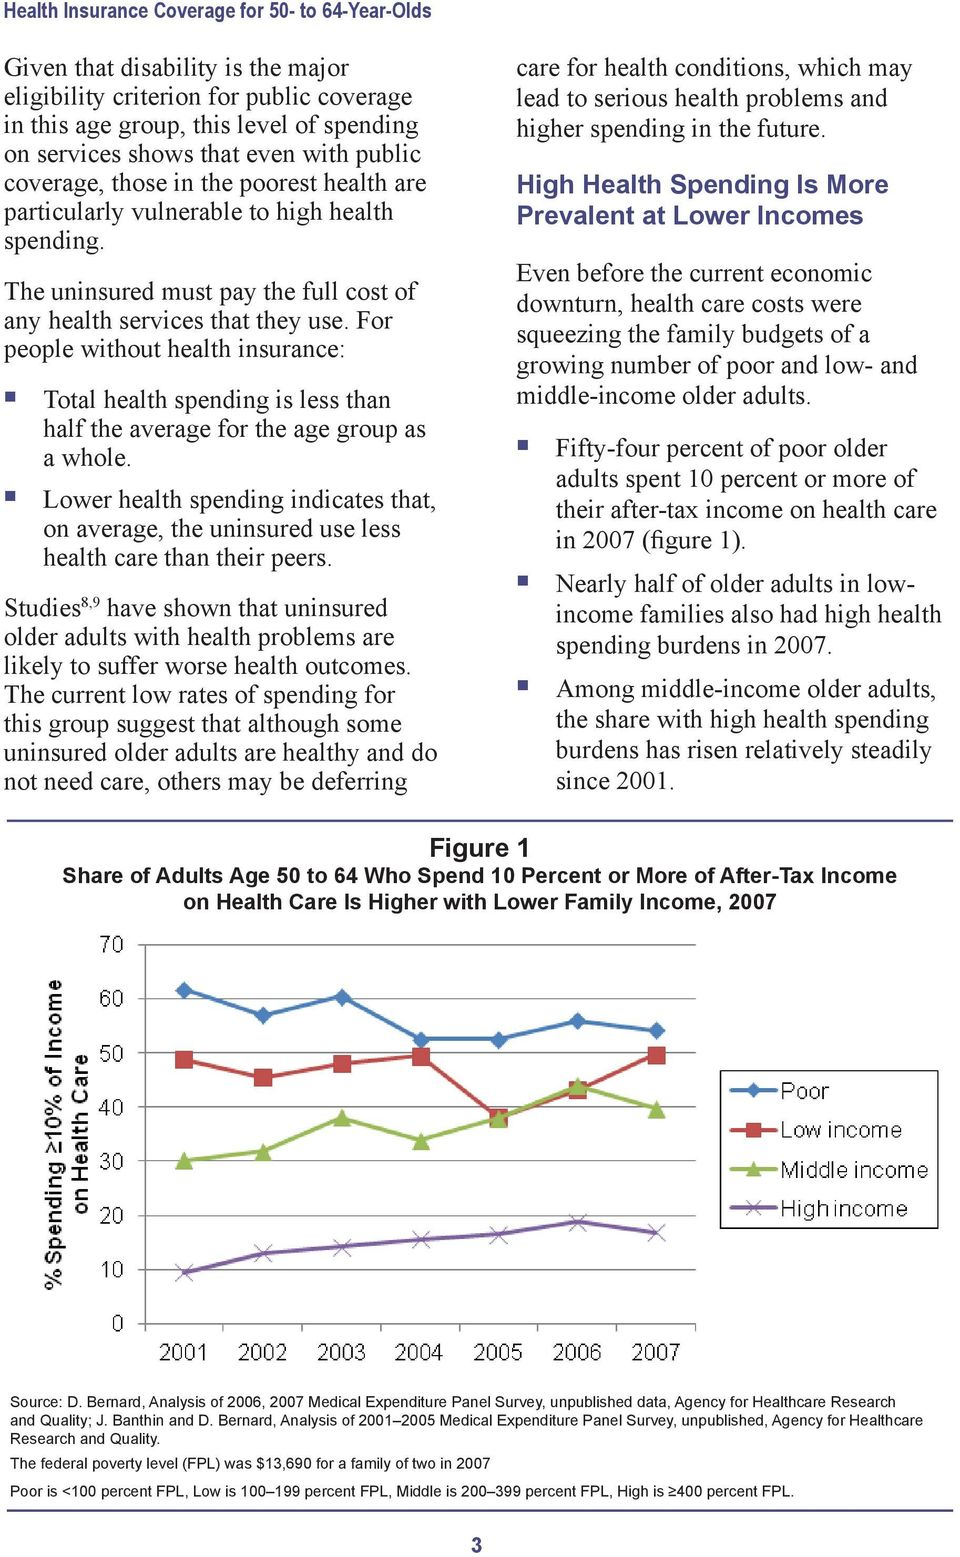 For people without health insurance: Total health spending is less than half the average for the age group as a whole.